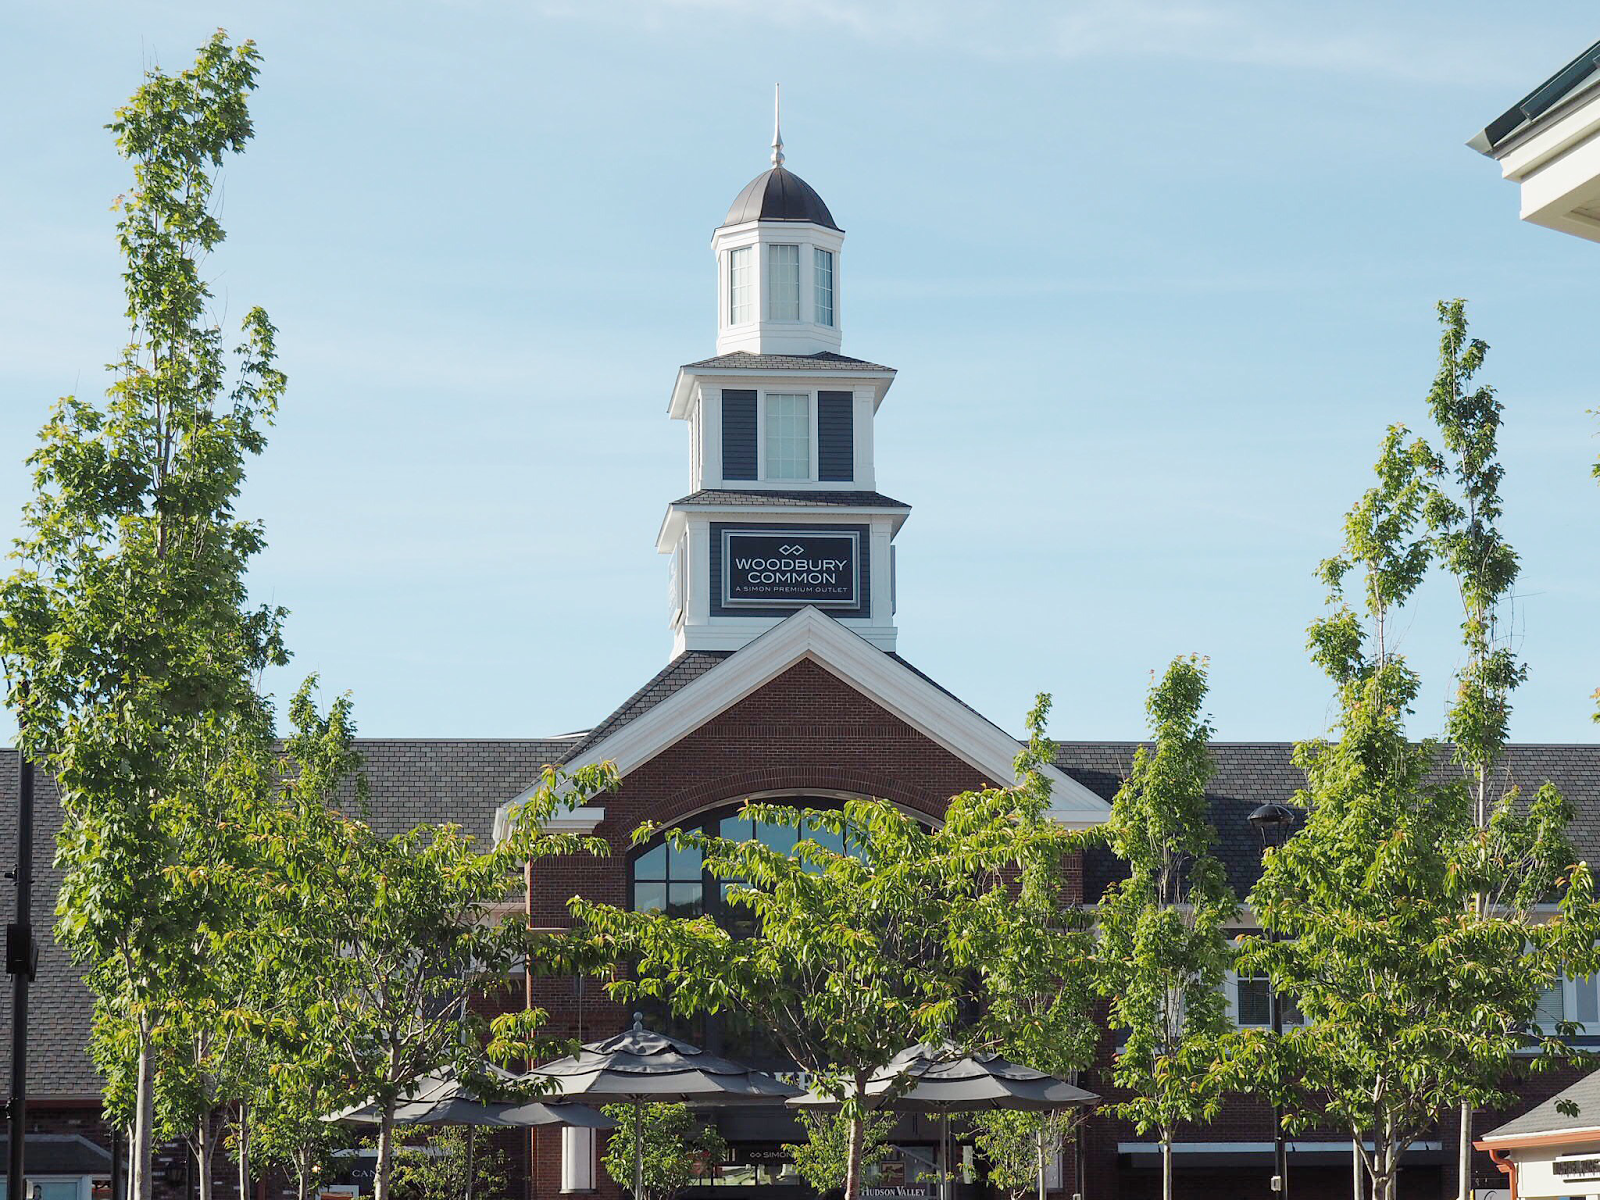 nyc-part-one-day-woodbury-common-premium-outlet